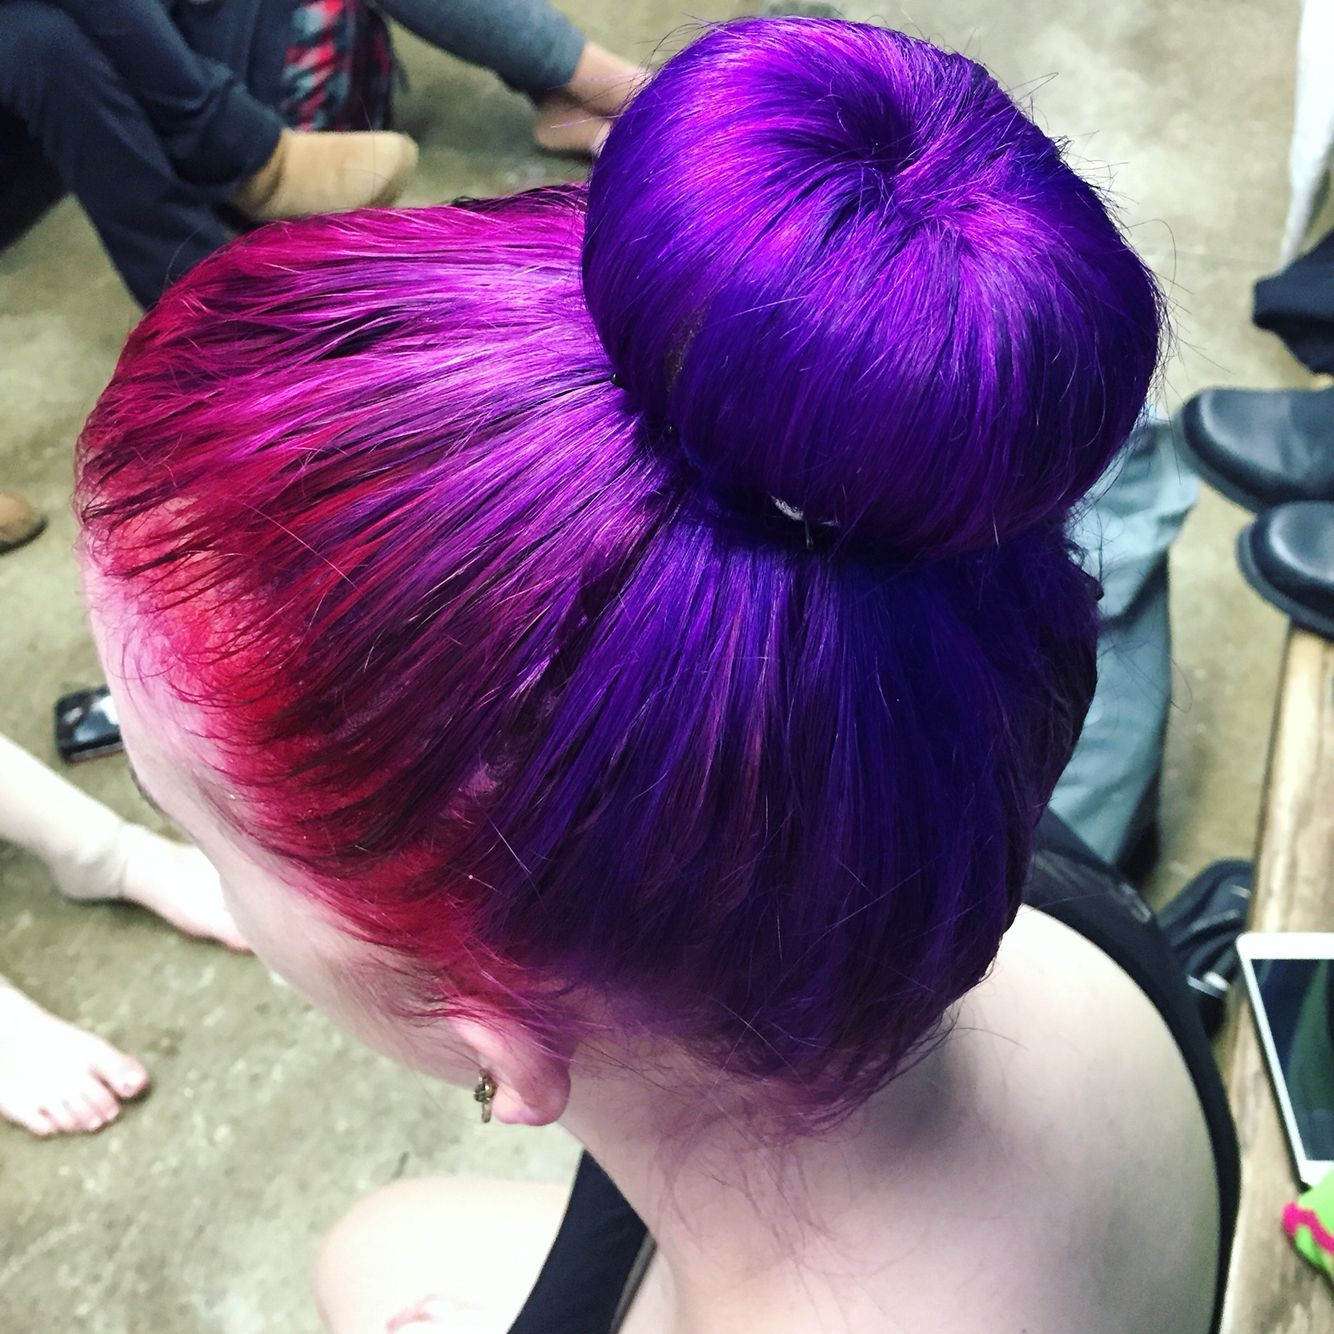 Arctic Fox Colors Wrath Purple Rain Violet Dream And Poseidon Color Done My Yours Truly Fox Hair Dye Arctic Fox Hair Color Arctic Fox Hair Dye